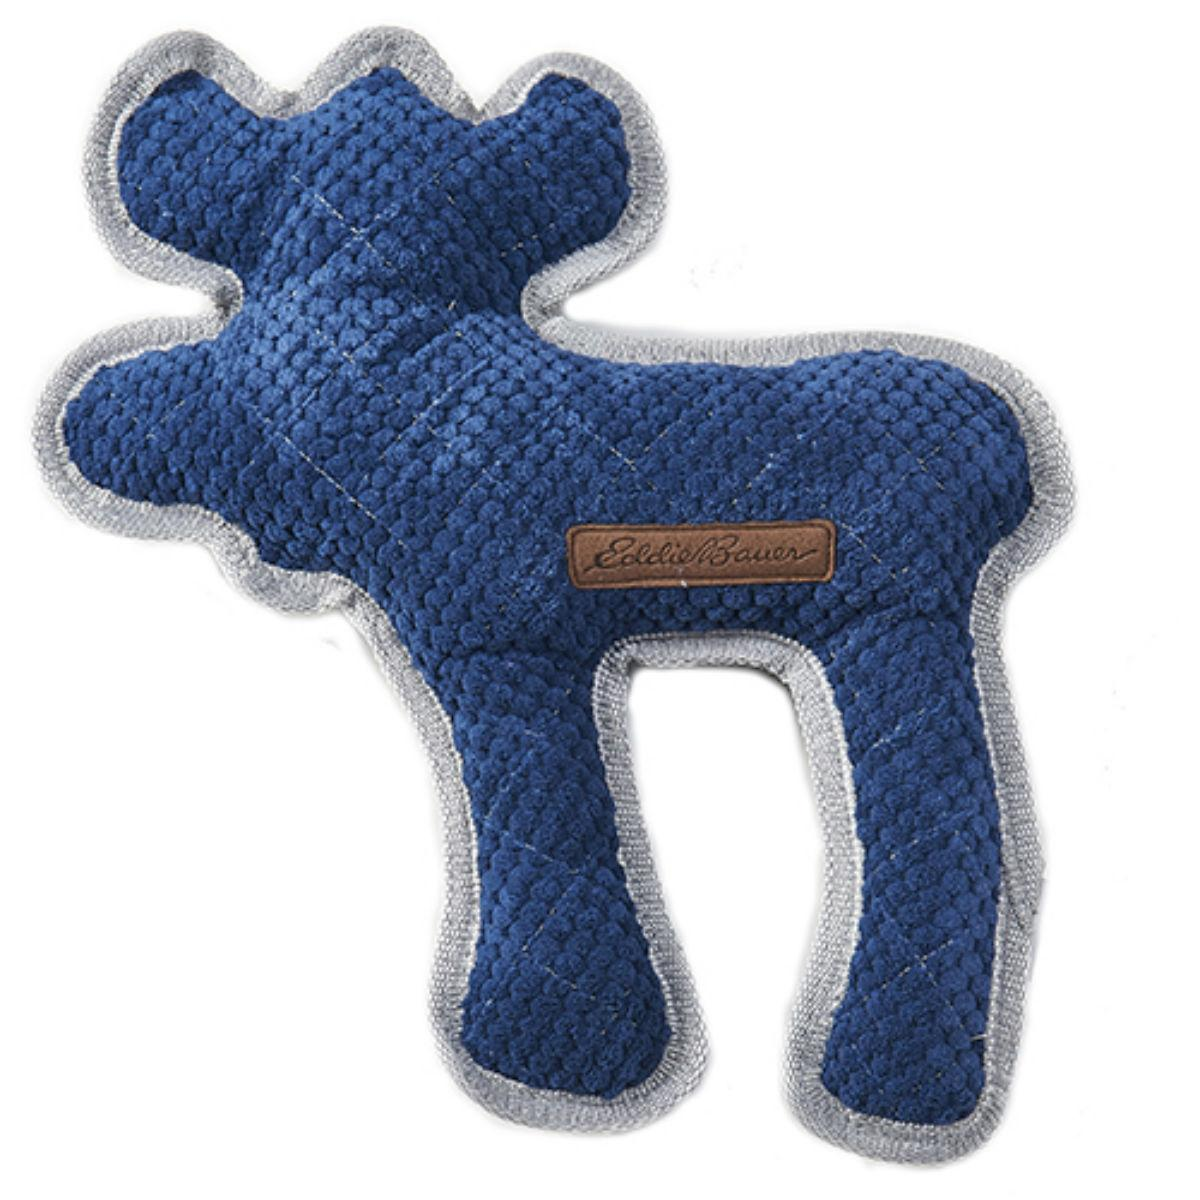 Eddie Bauer Quilted Plush Moose Dog Toy - Navy